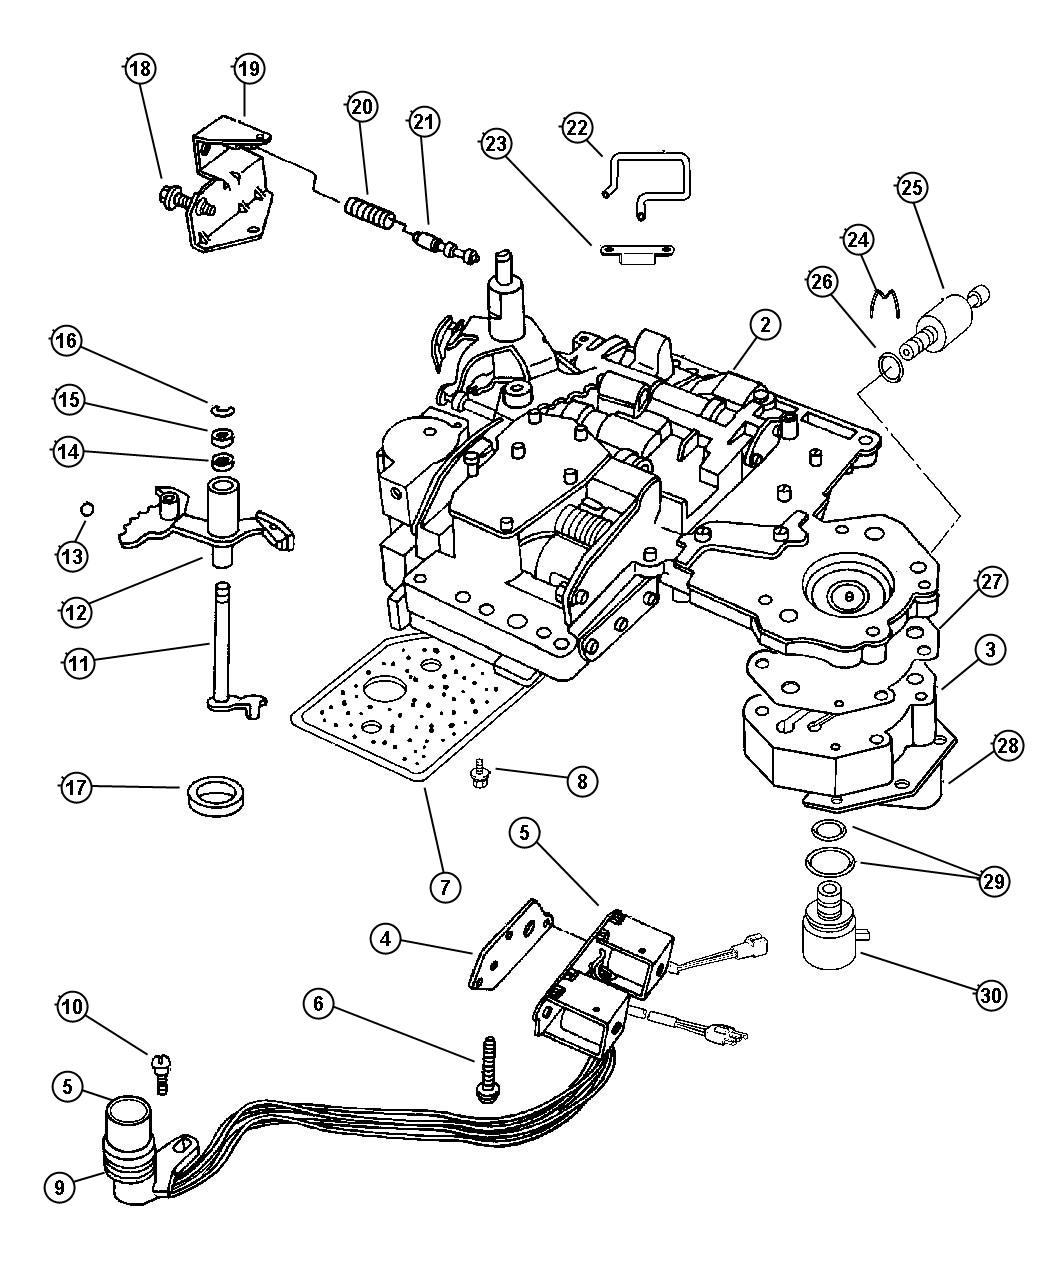 Excellent 1998 dodge radio wiring diagram ideas the best